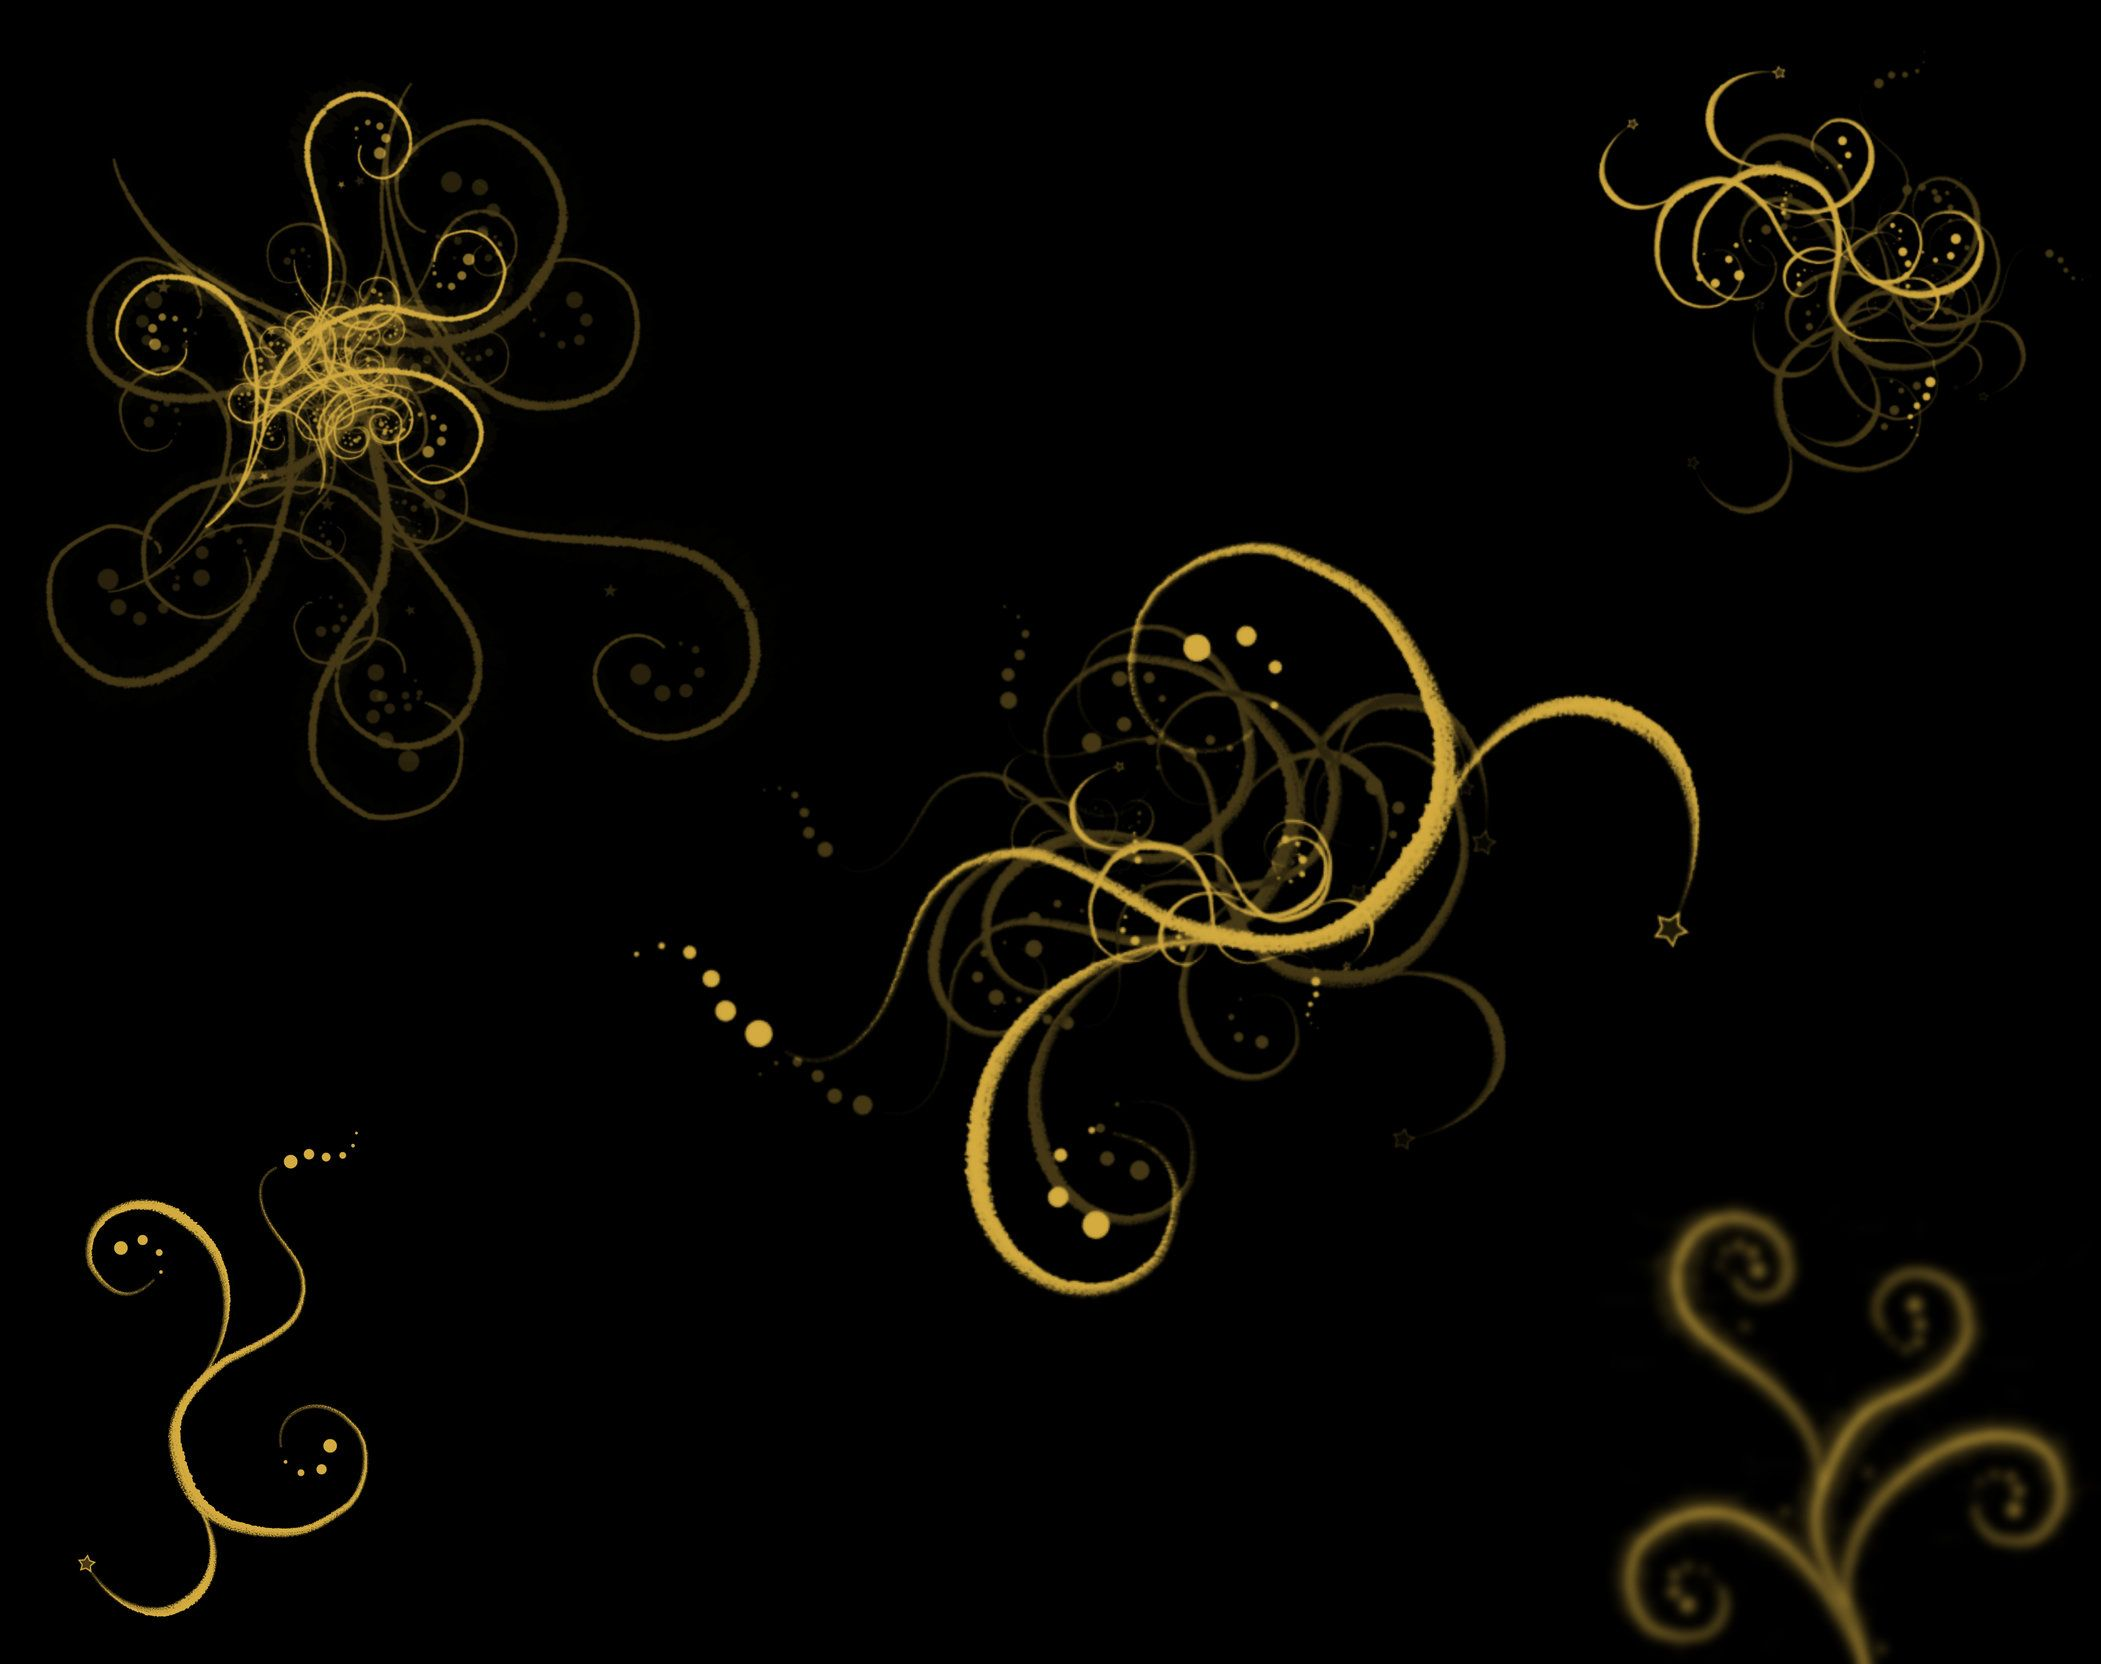 Black And Gold Wallpaper Hd Android Desktop Abstract ...